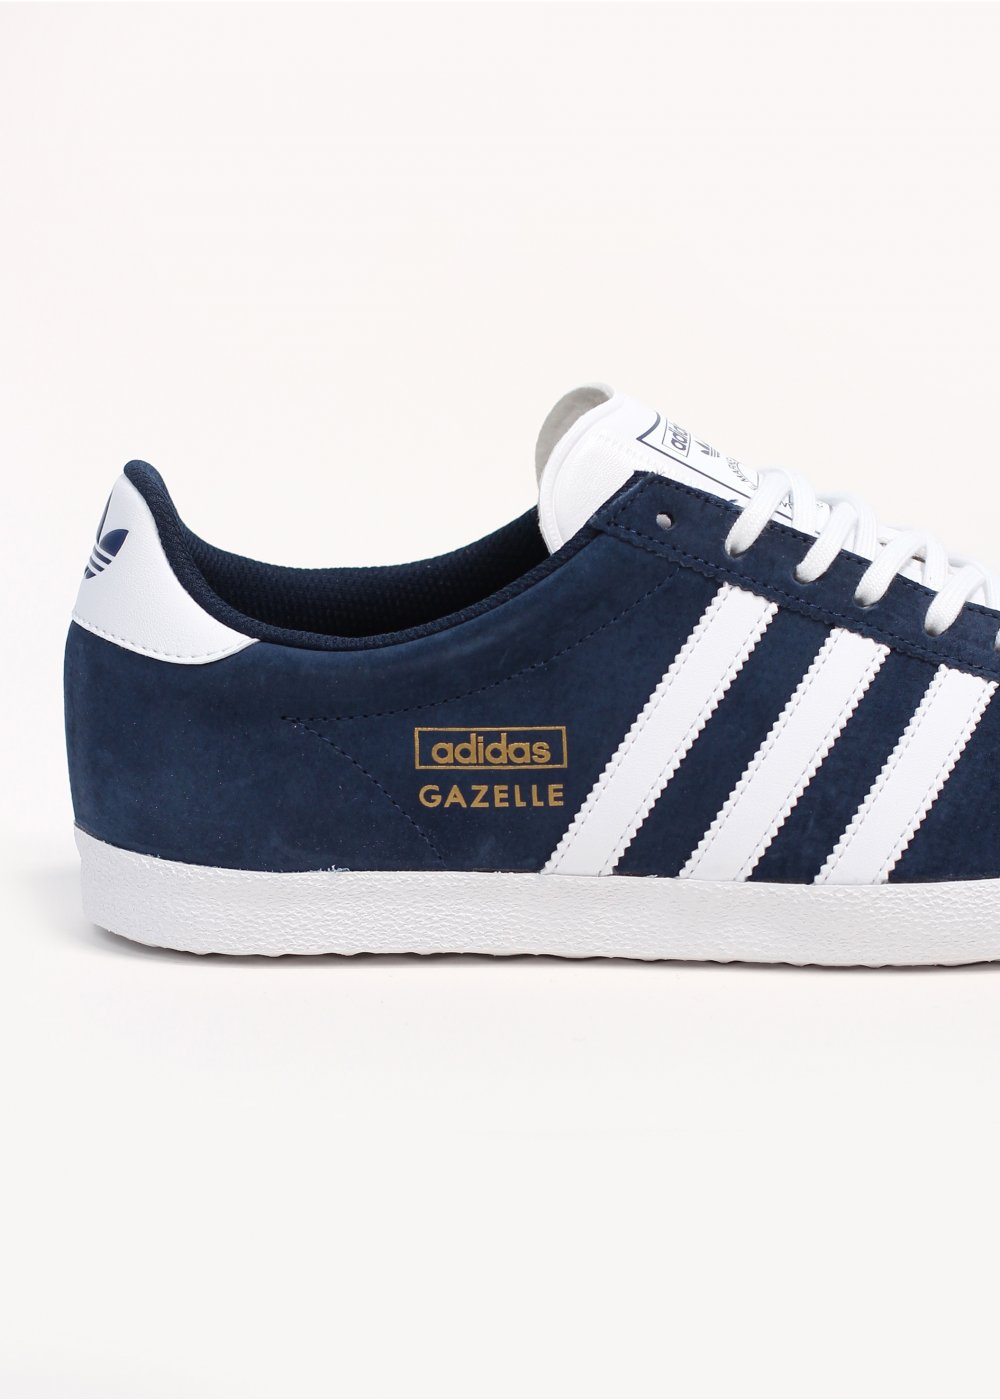 adidas gazelle og originals